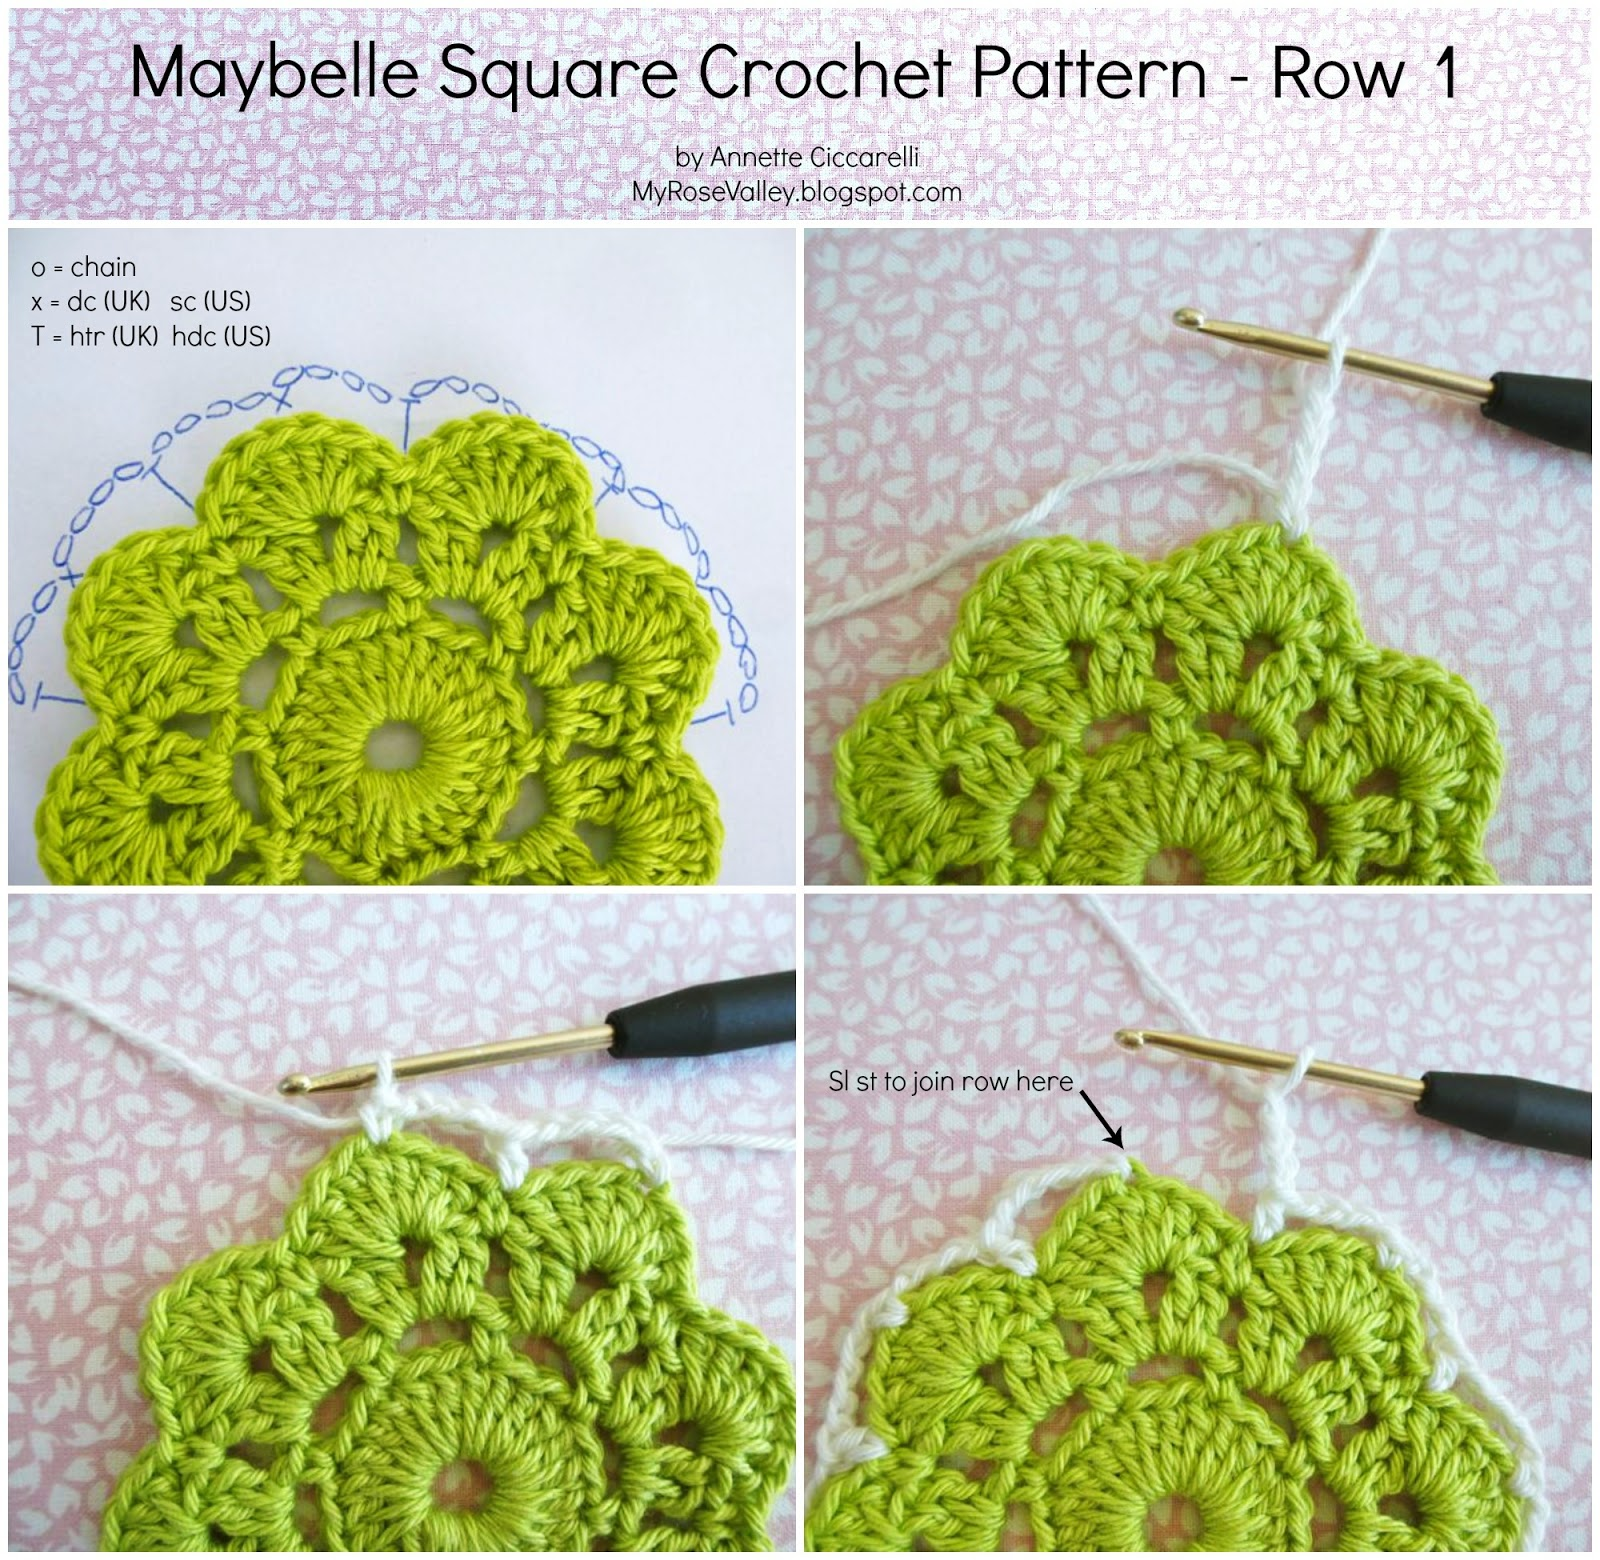 My rose valley maybelle square crochet pattern find the pattern for the maybelle crochet flower here picture tutorial here and when you have your maybelle flower you are ready to get started with the pooptronica